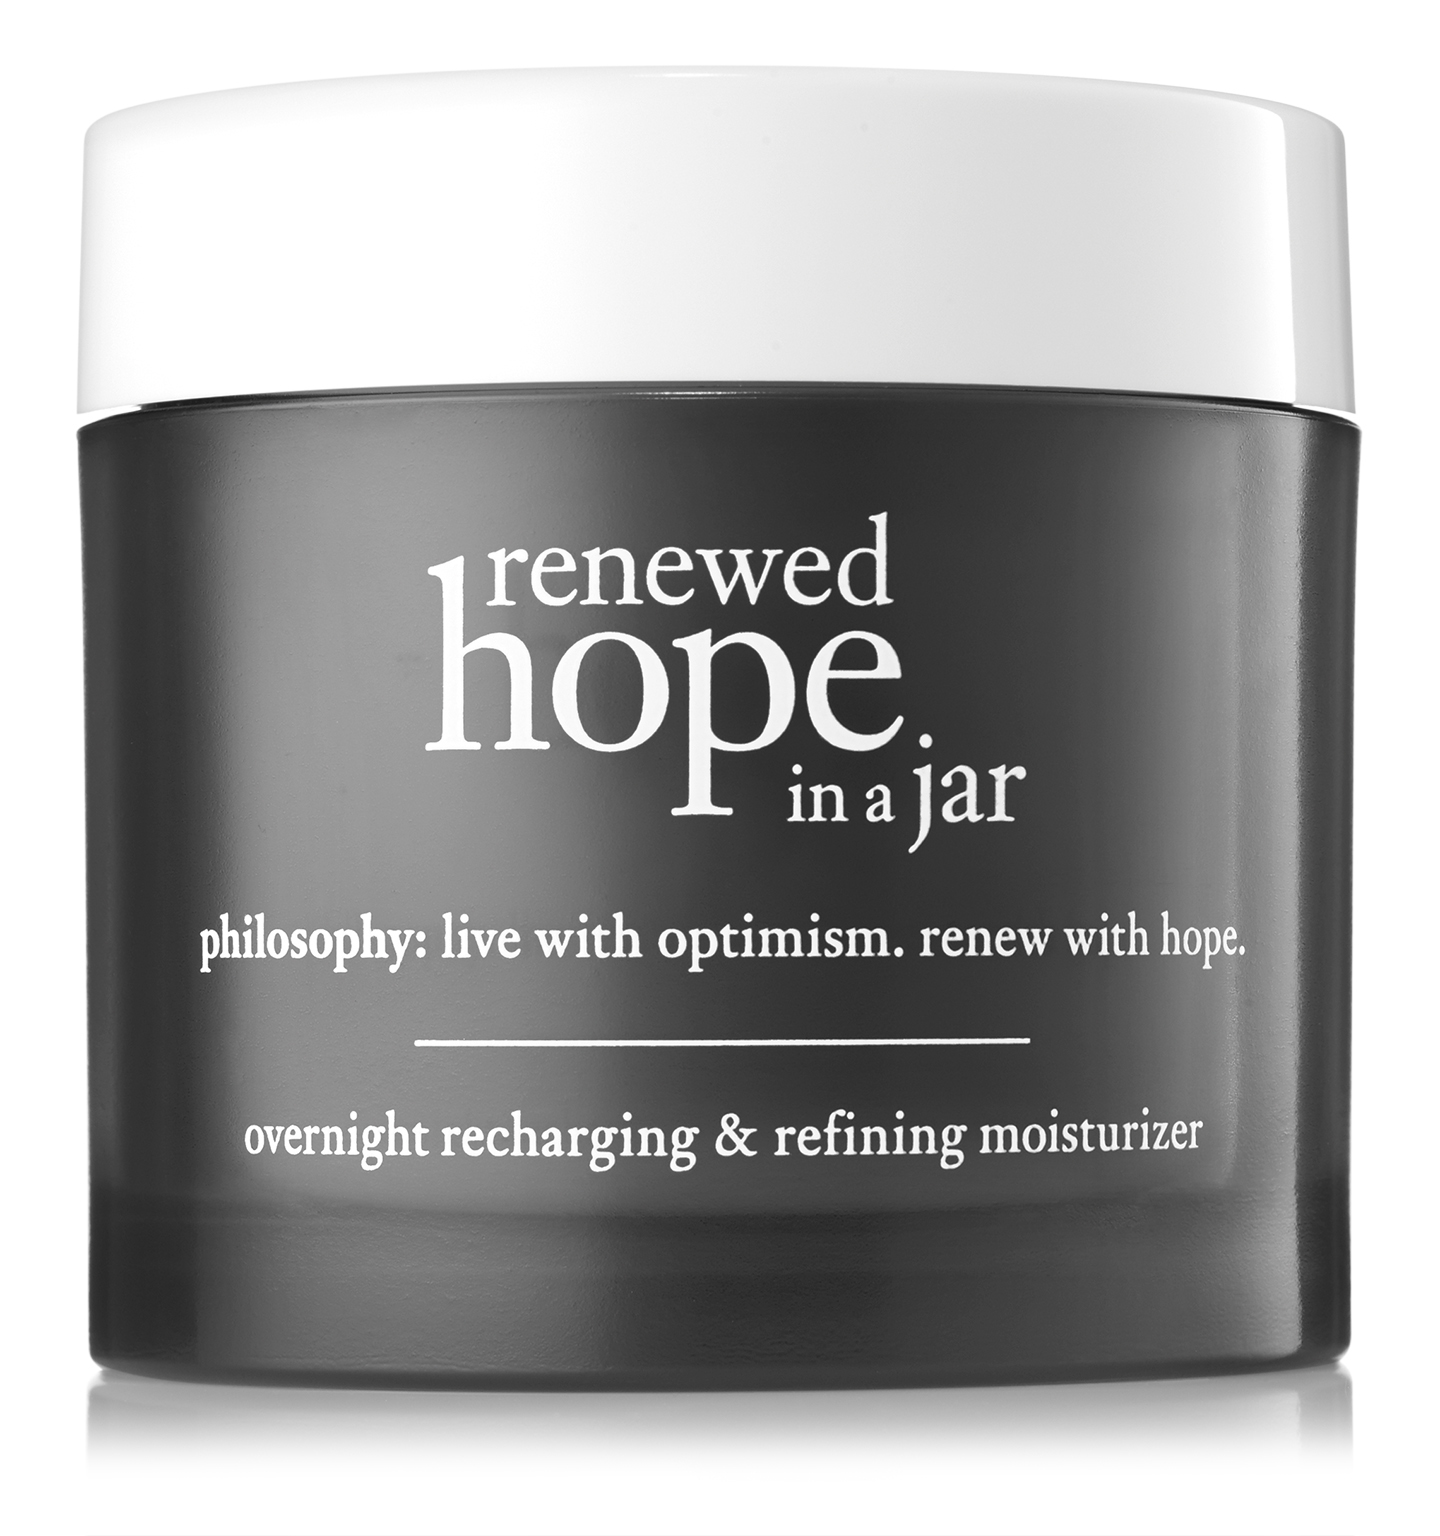 philosophy, renewed hope in a jar